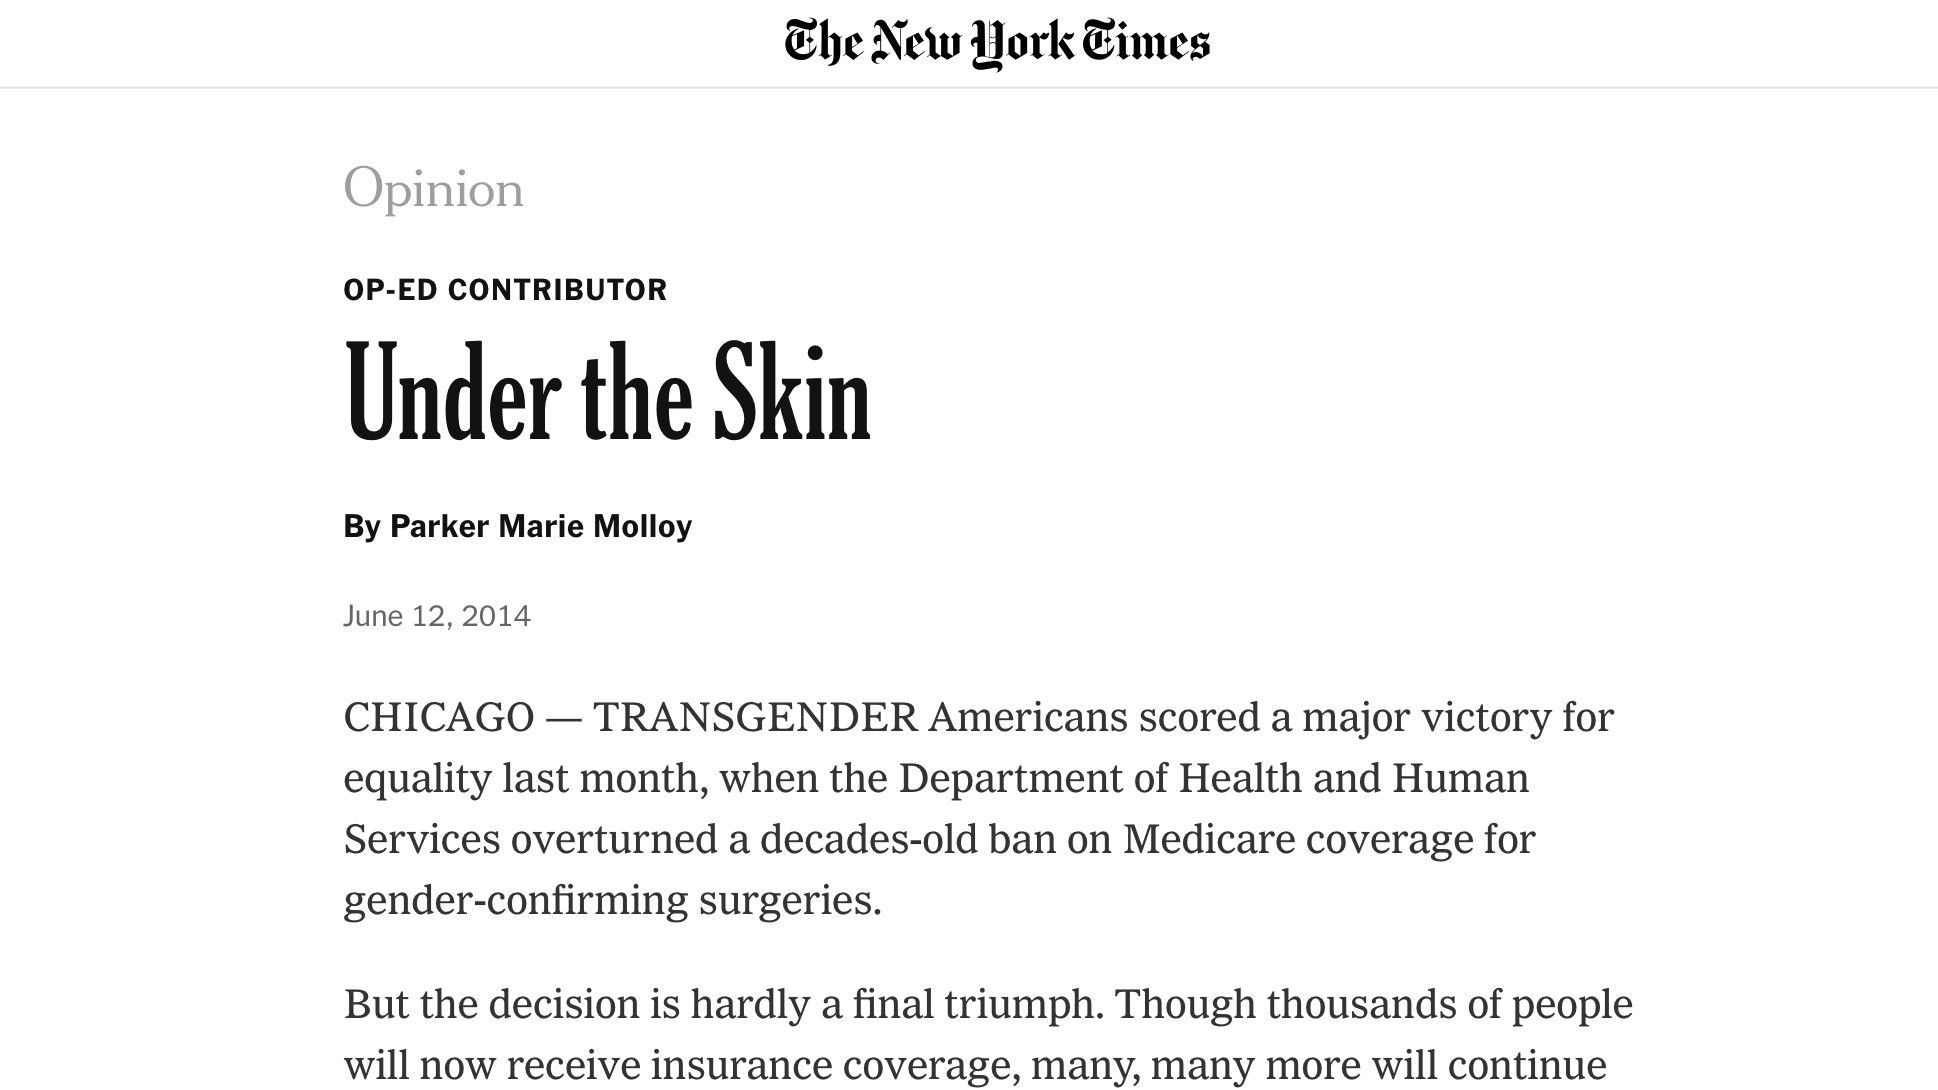 Under the Skin - The next fight for transgender equality in health insurance.The New York TimesJune 12, 2014